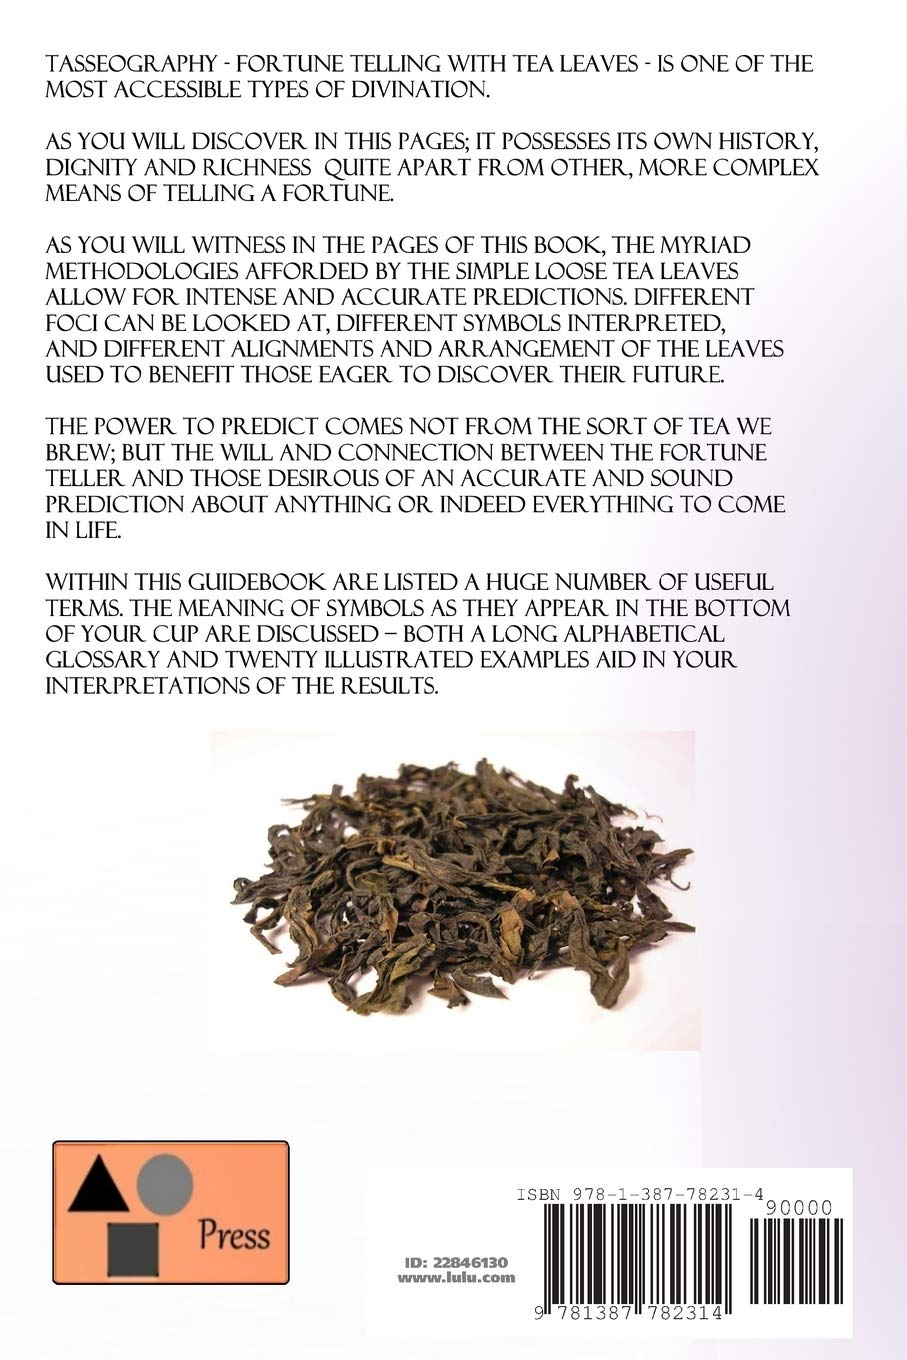 Fortune Telling With Tea Leaves A Beginners Guide How To Tell